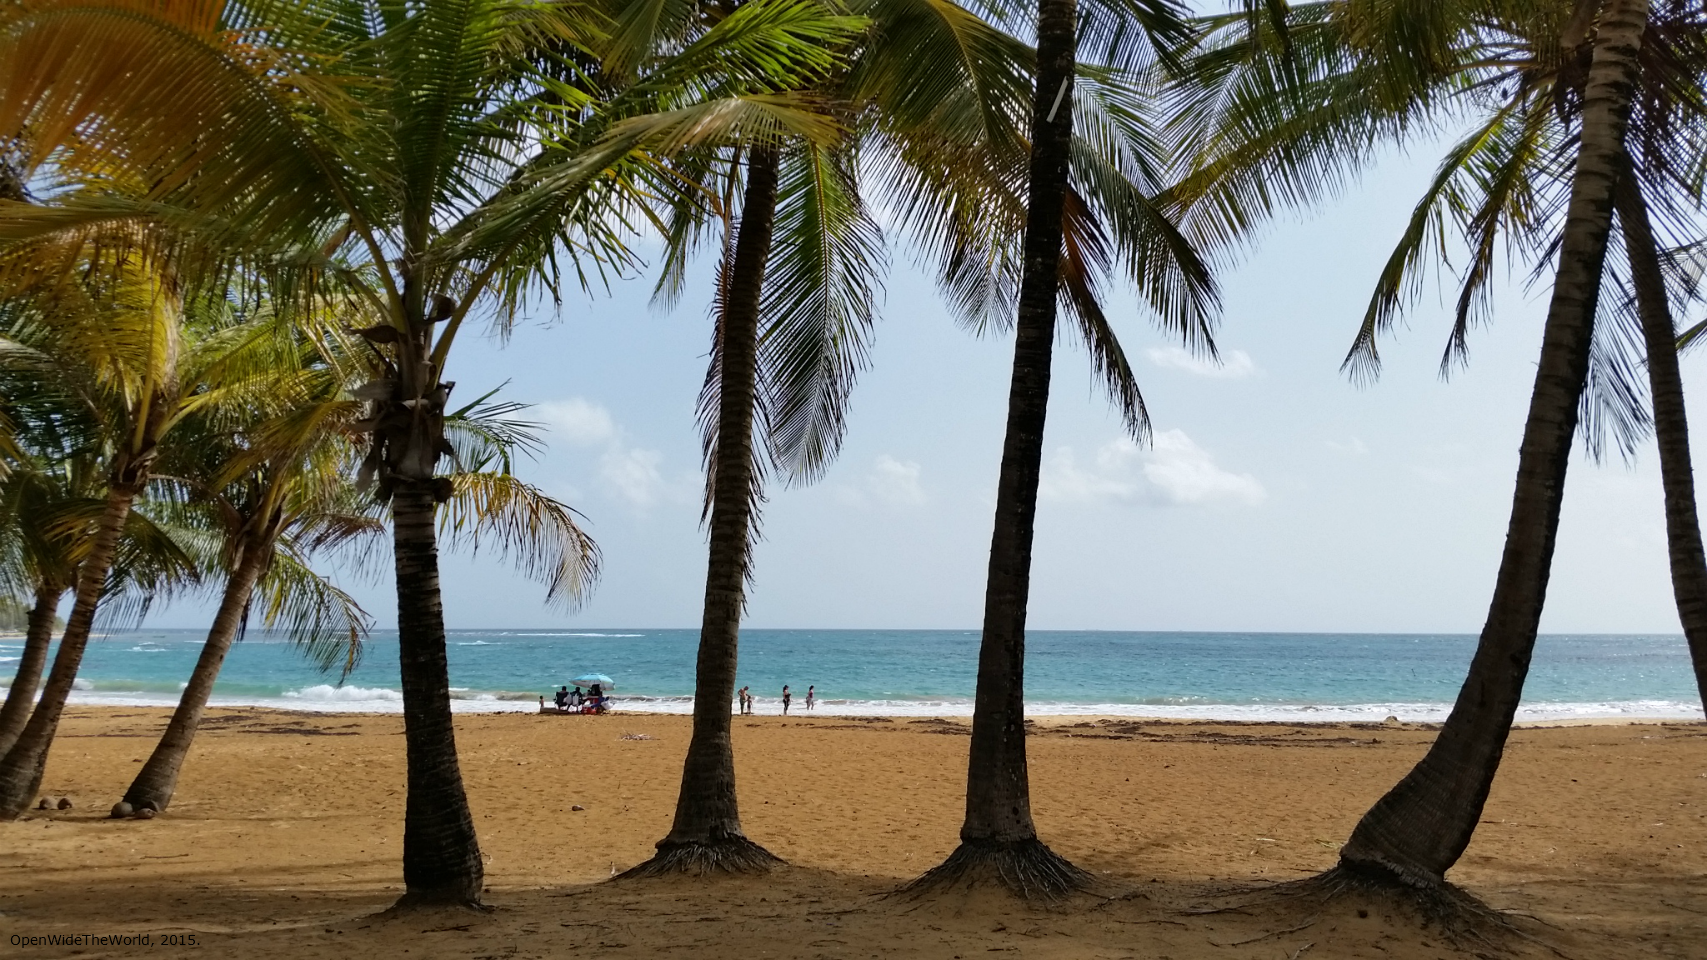 Mid-afternoon, and this gorgeous palm-lined beach is almost deserted. Playa Azul, Luquillo, Puerto Rico